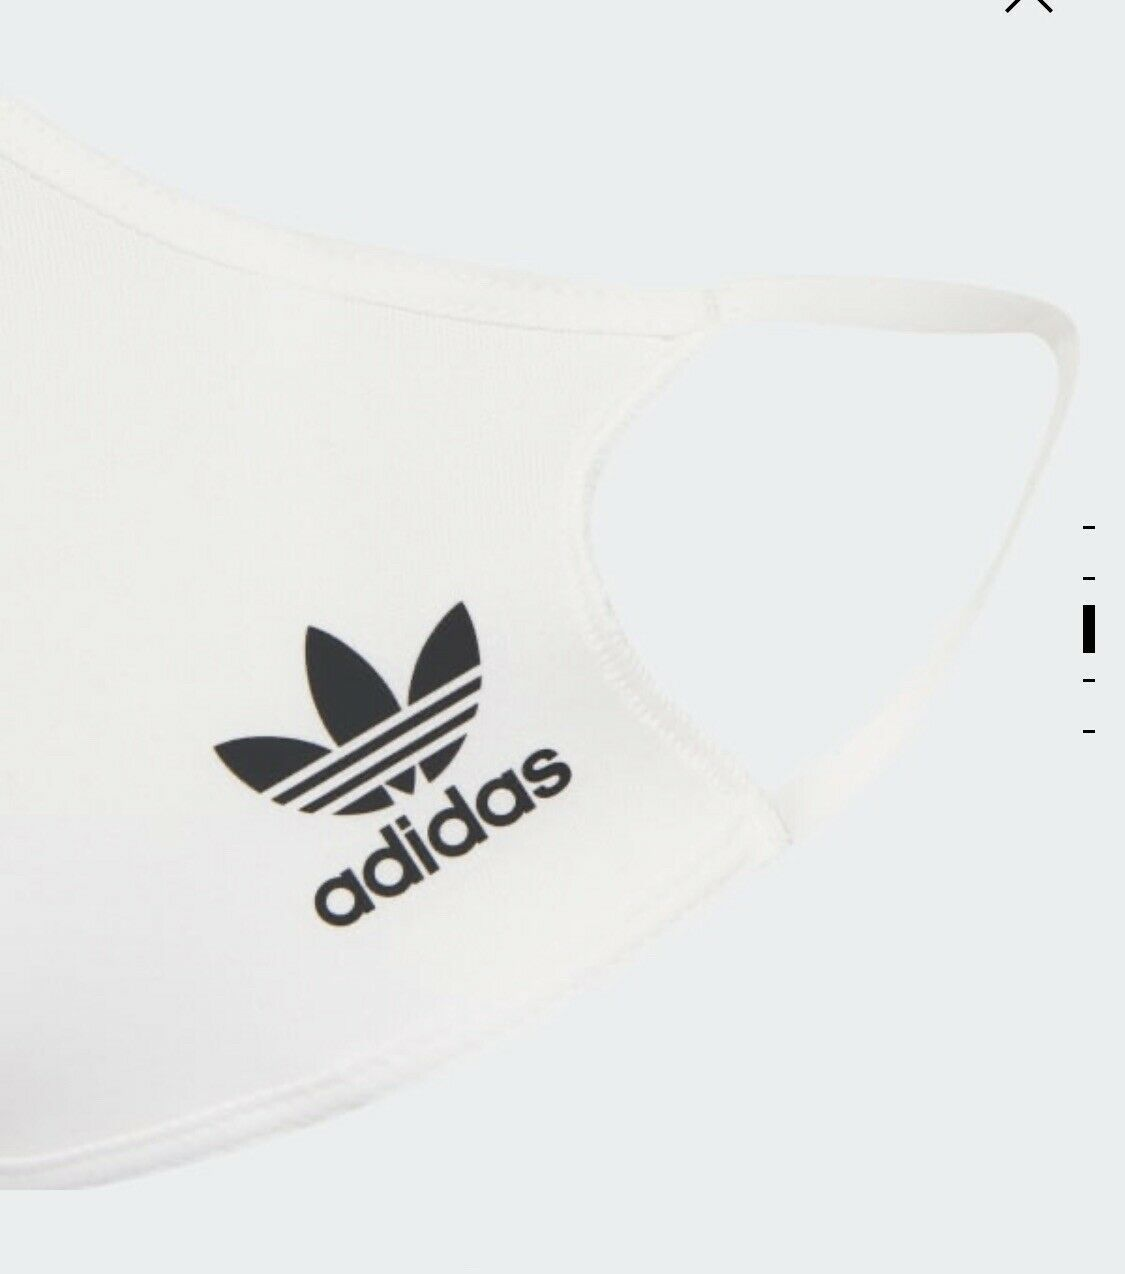 AdidasWHITE Face Mask Cover Reusable Washable Size Small Brand New FreeFastPost